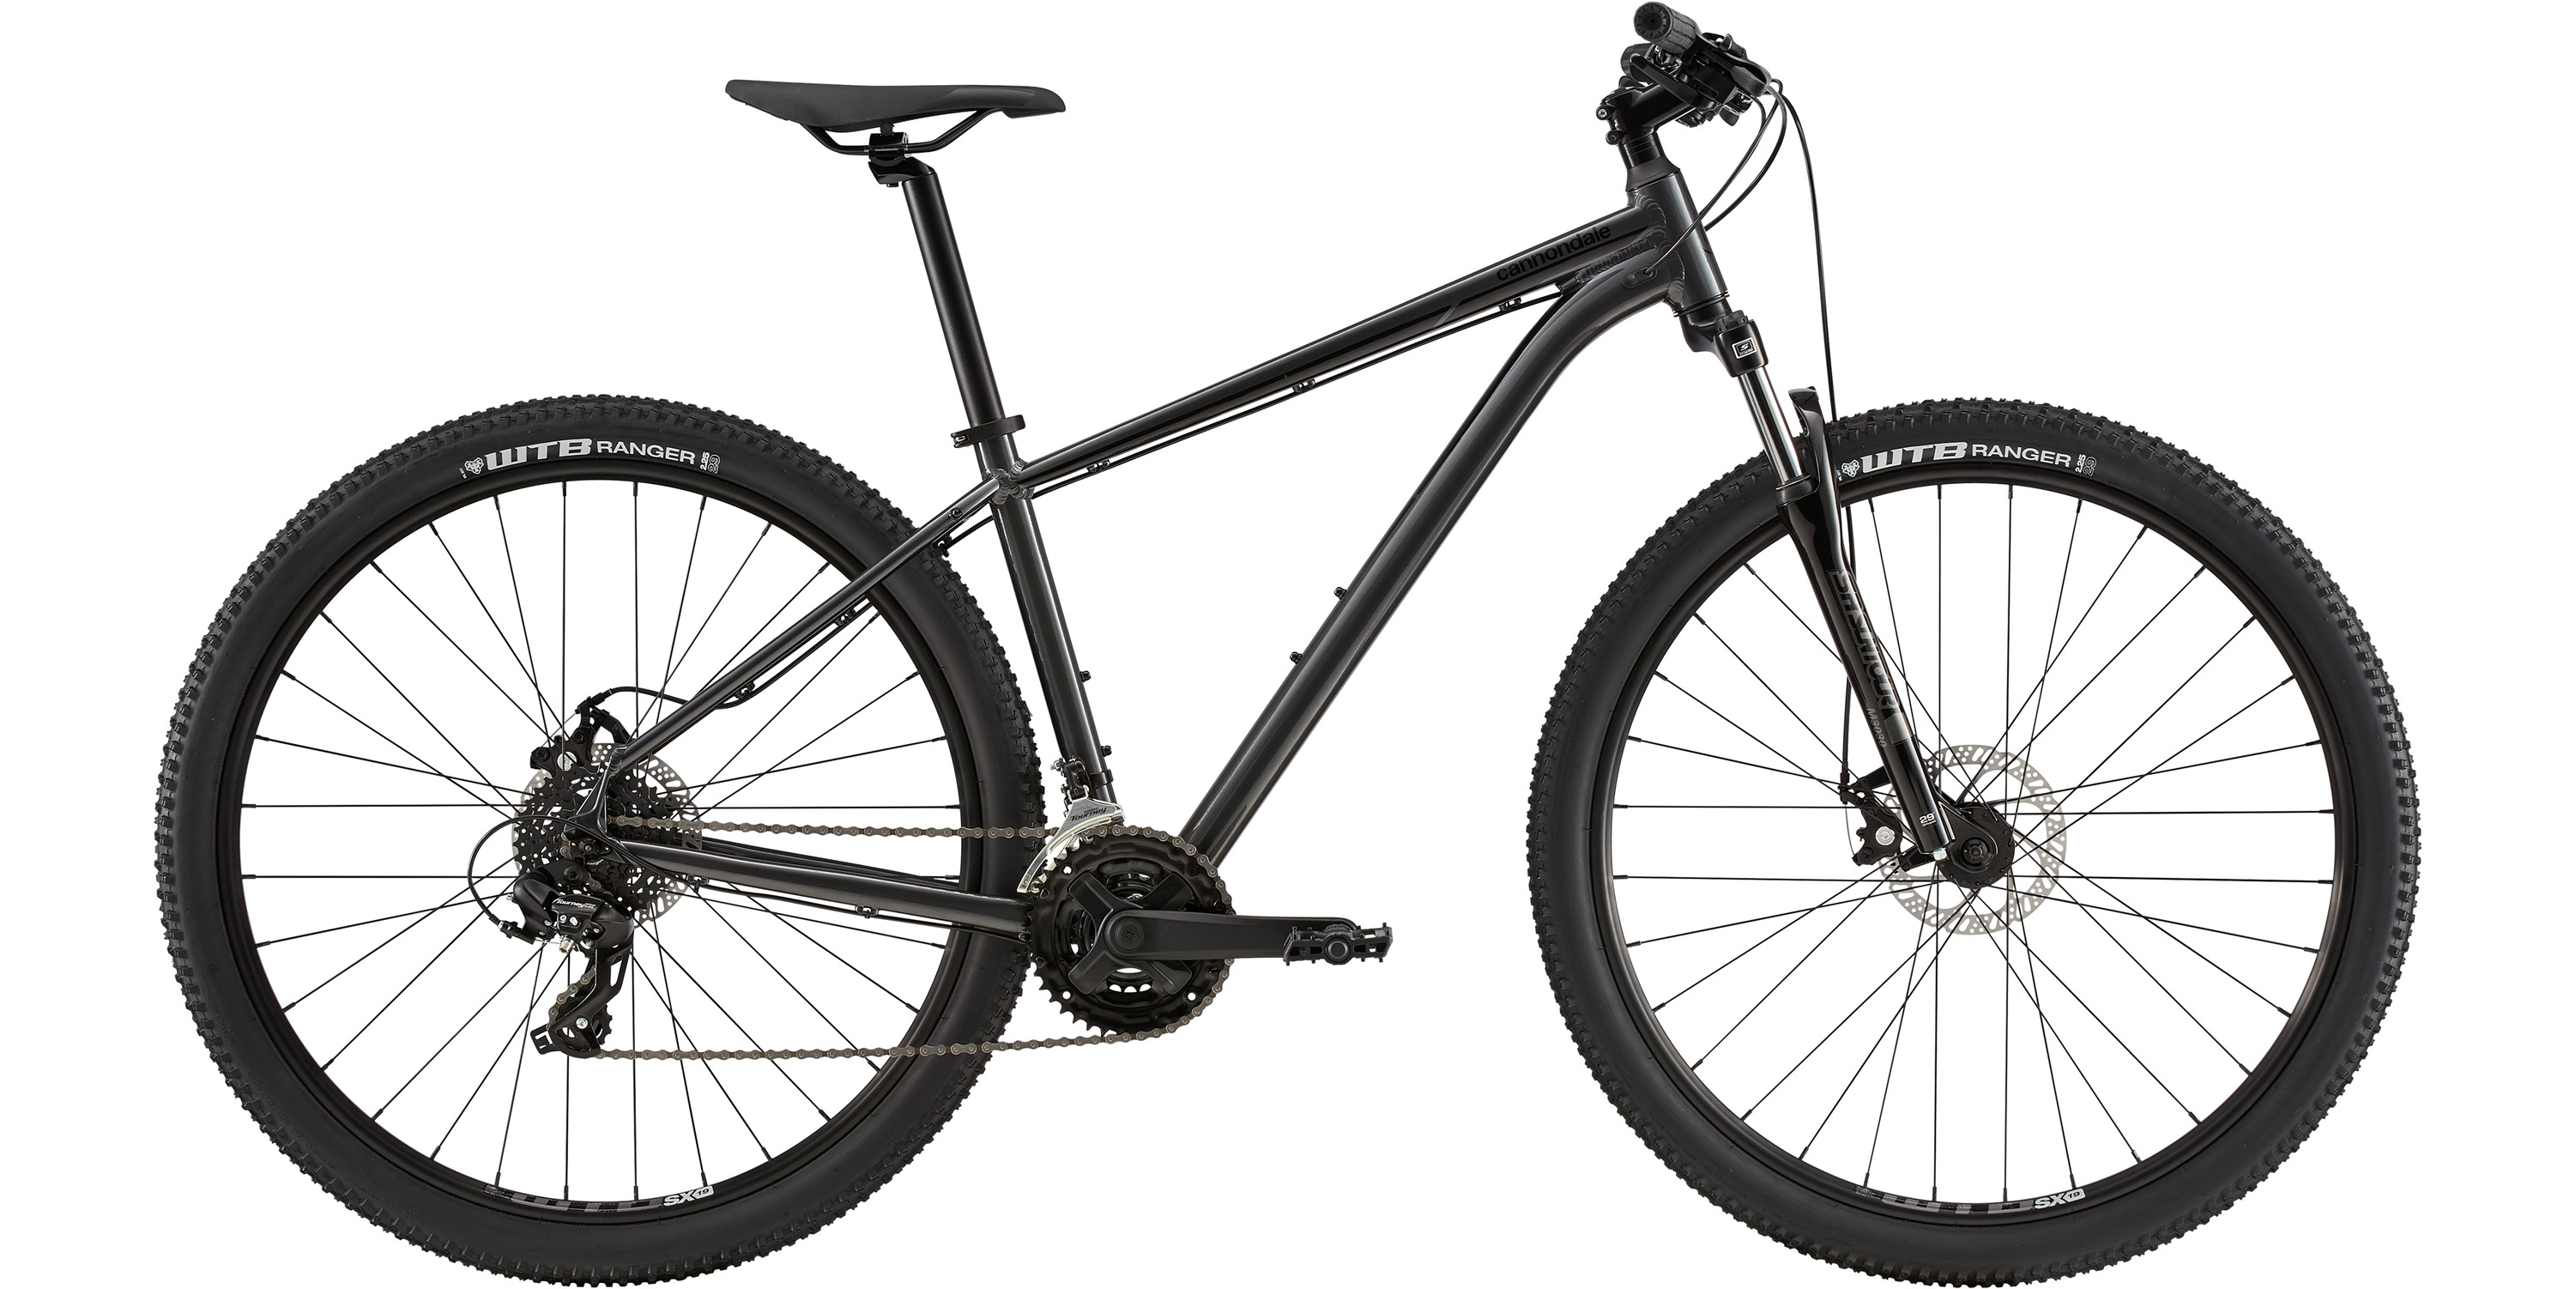 2020 Cannondale Trail 8 Mens Hardtail Mountain Bike in Grey | MTB